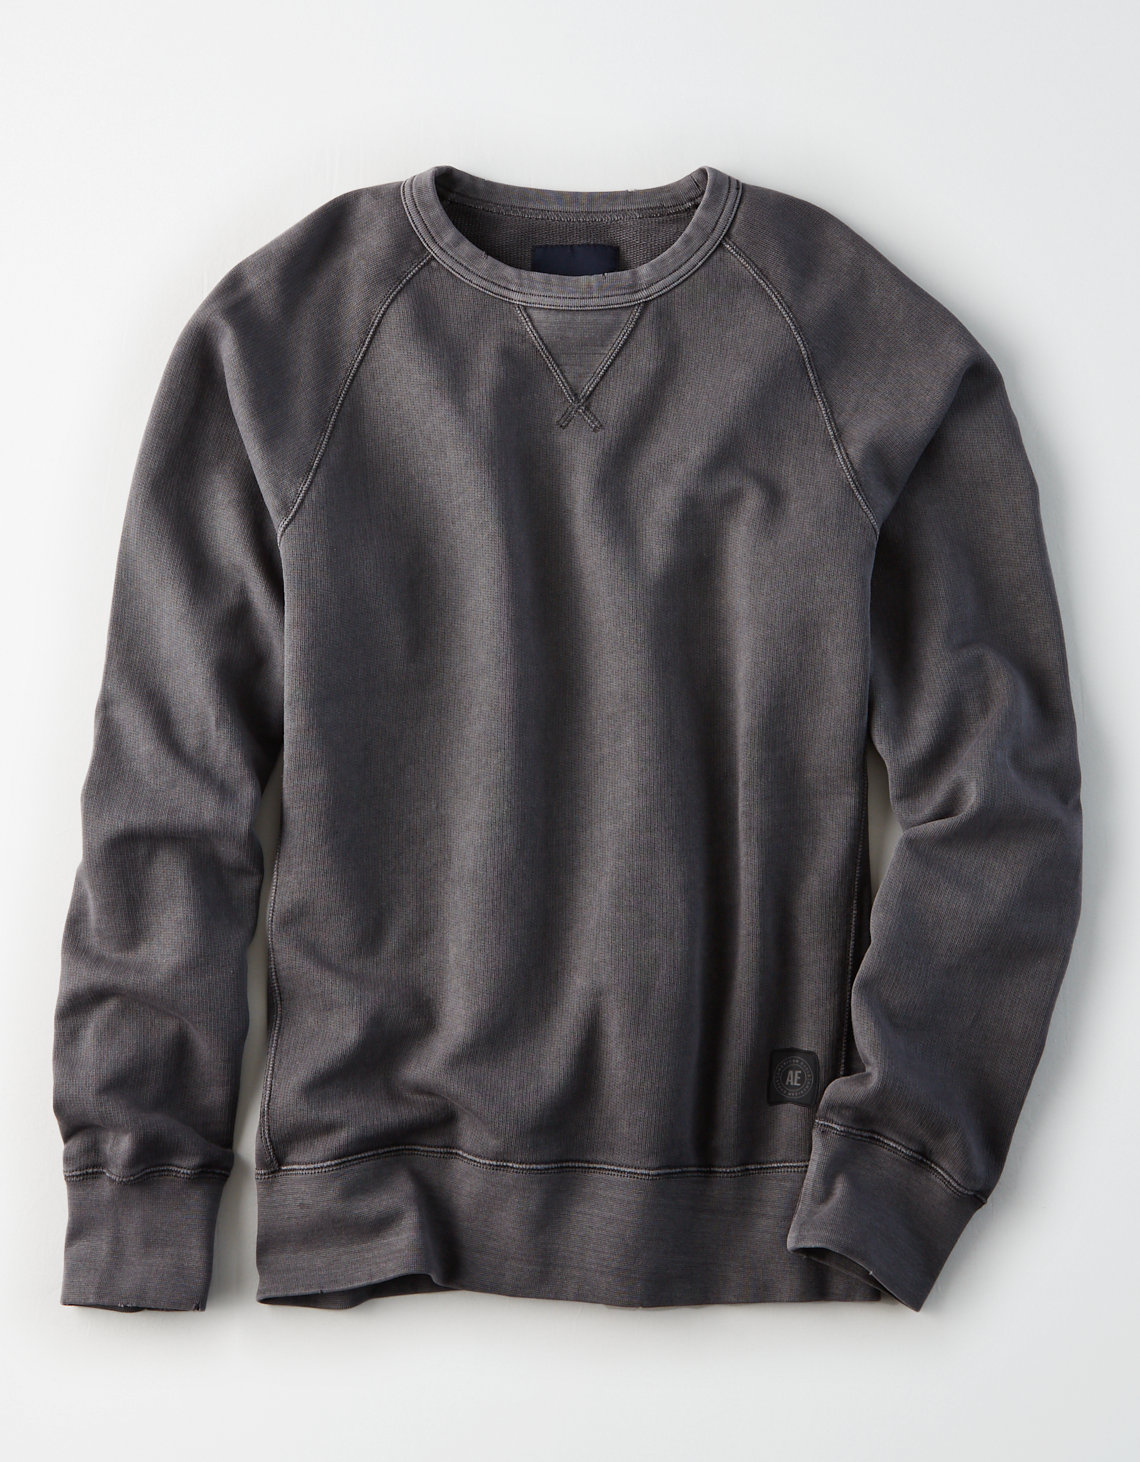 AE Distressed Crew Neck Sweatshirt